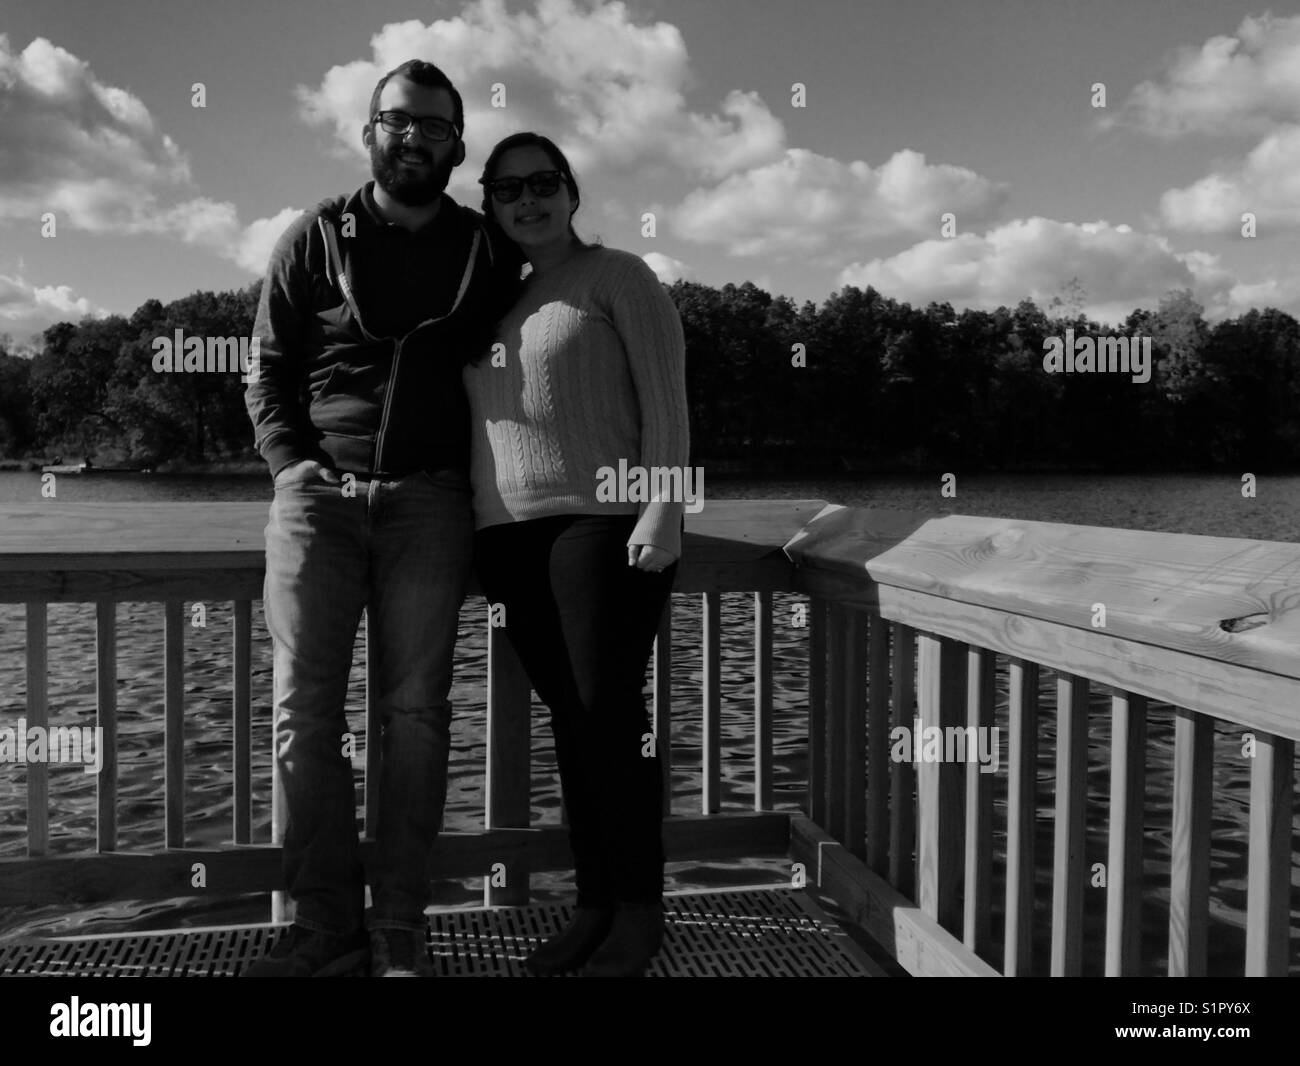 Husband and wife on a pier by the lake posing for couple photos - Stock Image